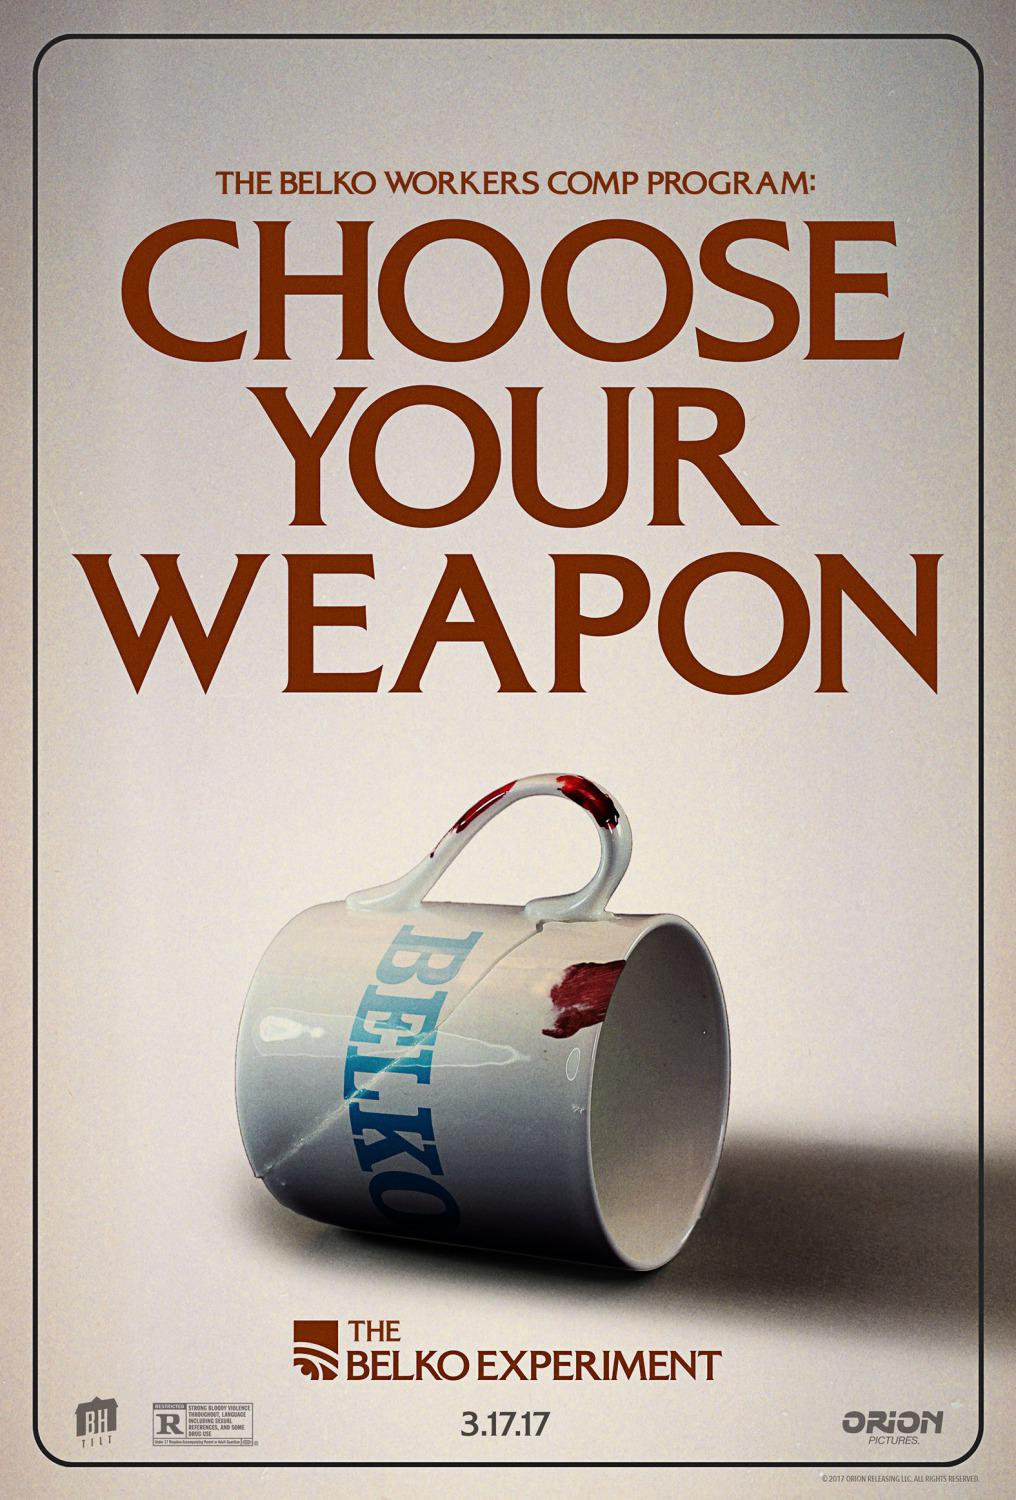 Belko experiment - film poster - choose your weapon